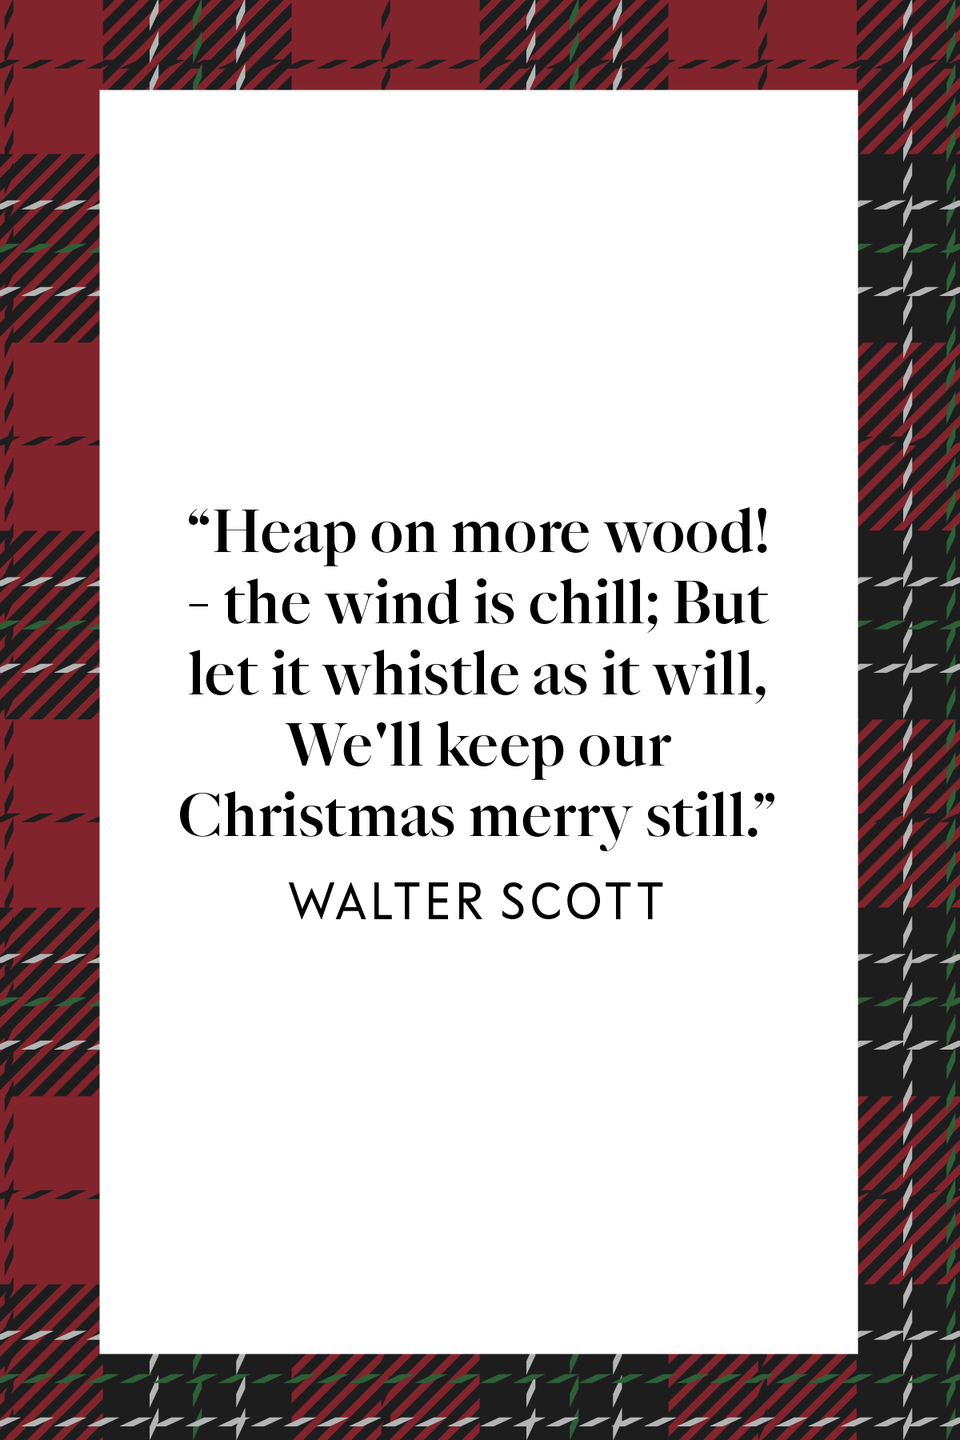 "<p>""Heap on more wood! - the wind is chill; But let it whistle as it will, We'll keep our Christmas merry still,"" Scottish novelist, poet, and playwright wrote in <em><a href=""https://www.google.com/books/edition/Marmion/ejFHAAAAYAAJ?hl=en&gbpv=1&printsec=frontcover"" rel=""nofollow noopener"" target=""_blank"" data-ylk=""slk:Marmion: A Tale of Flodden Field"" class=""link rapid-noclick-resp"">Marmion: A Tale of Flodden Field</a>, </em>the historical romance in verse published in 1808.</p>"